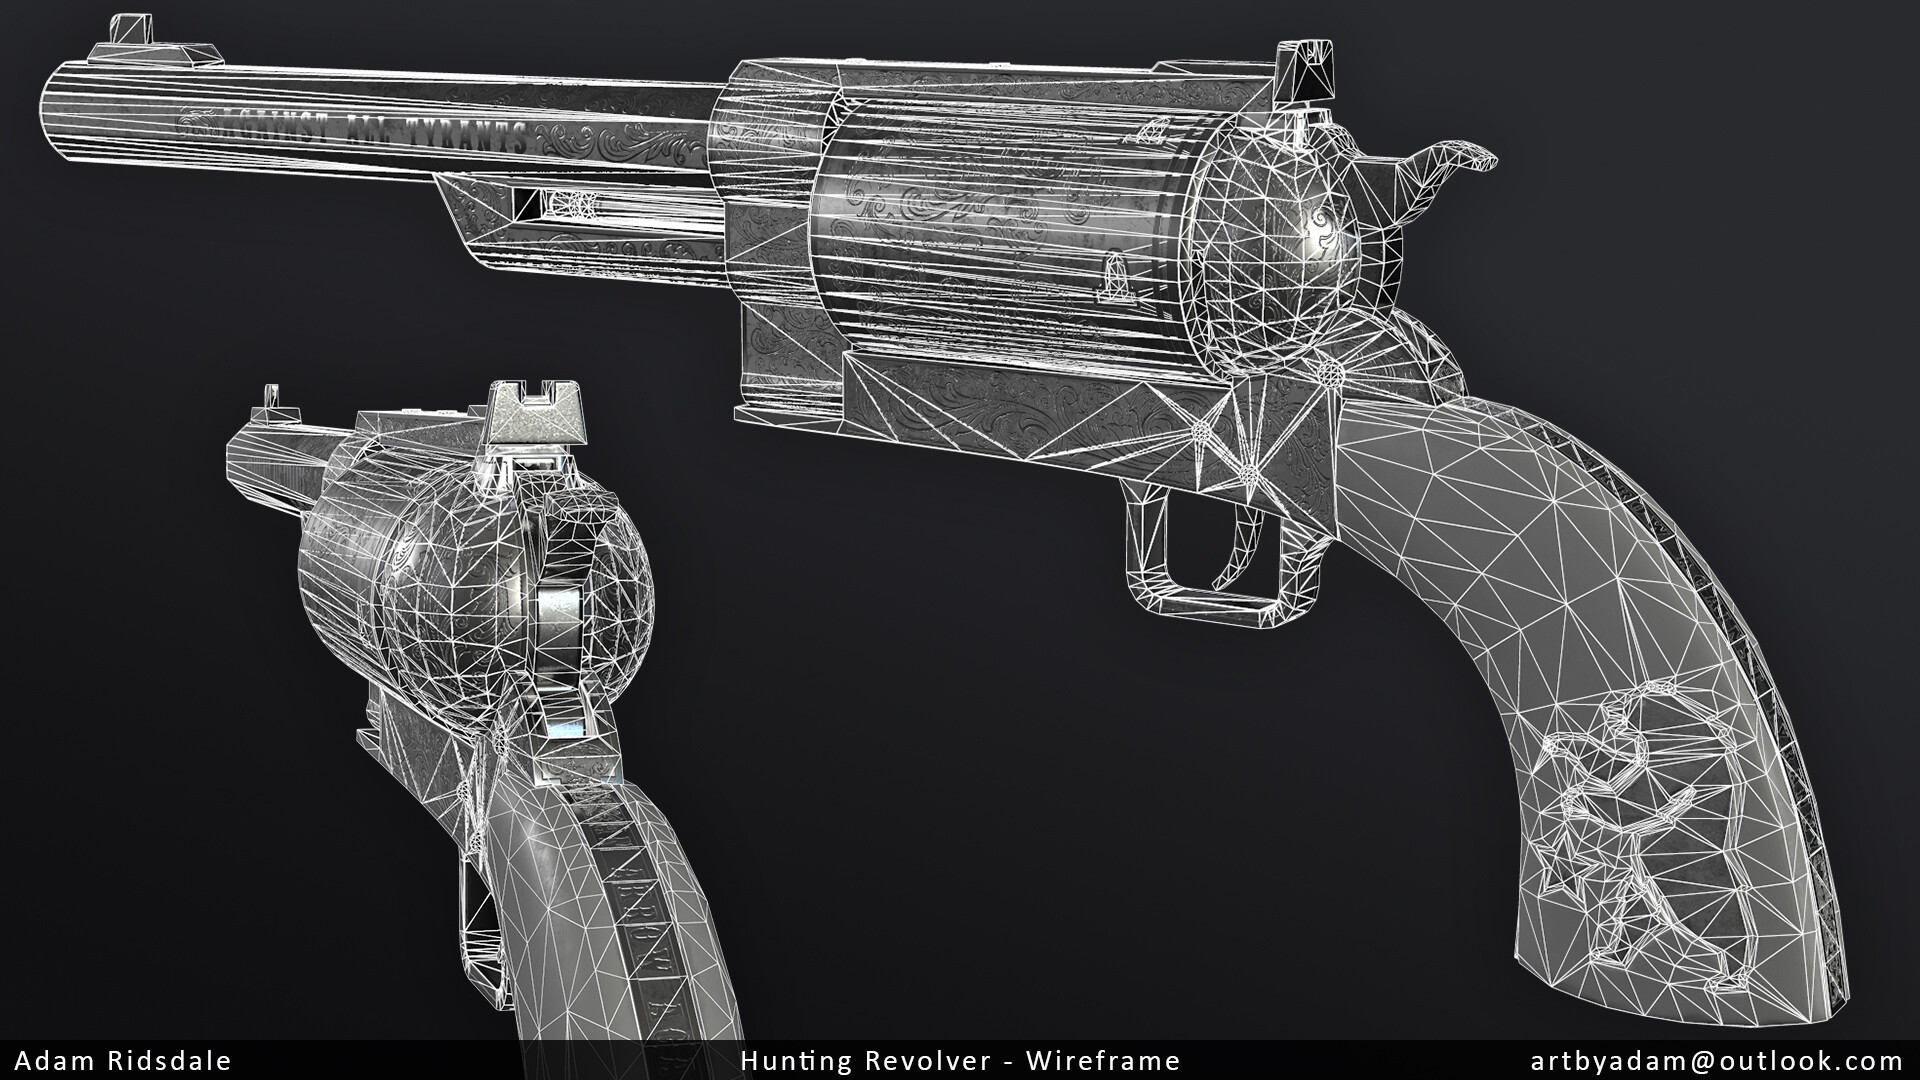 Adam ridsdale shot wireframe sequoia 1